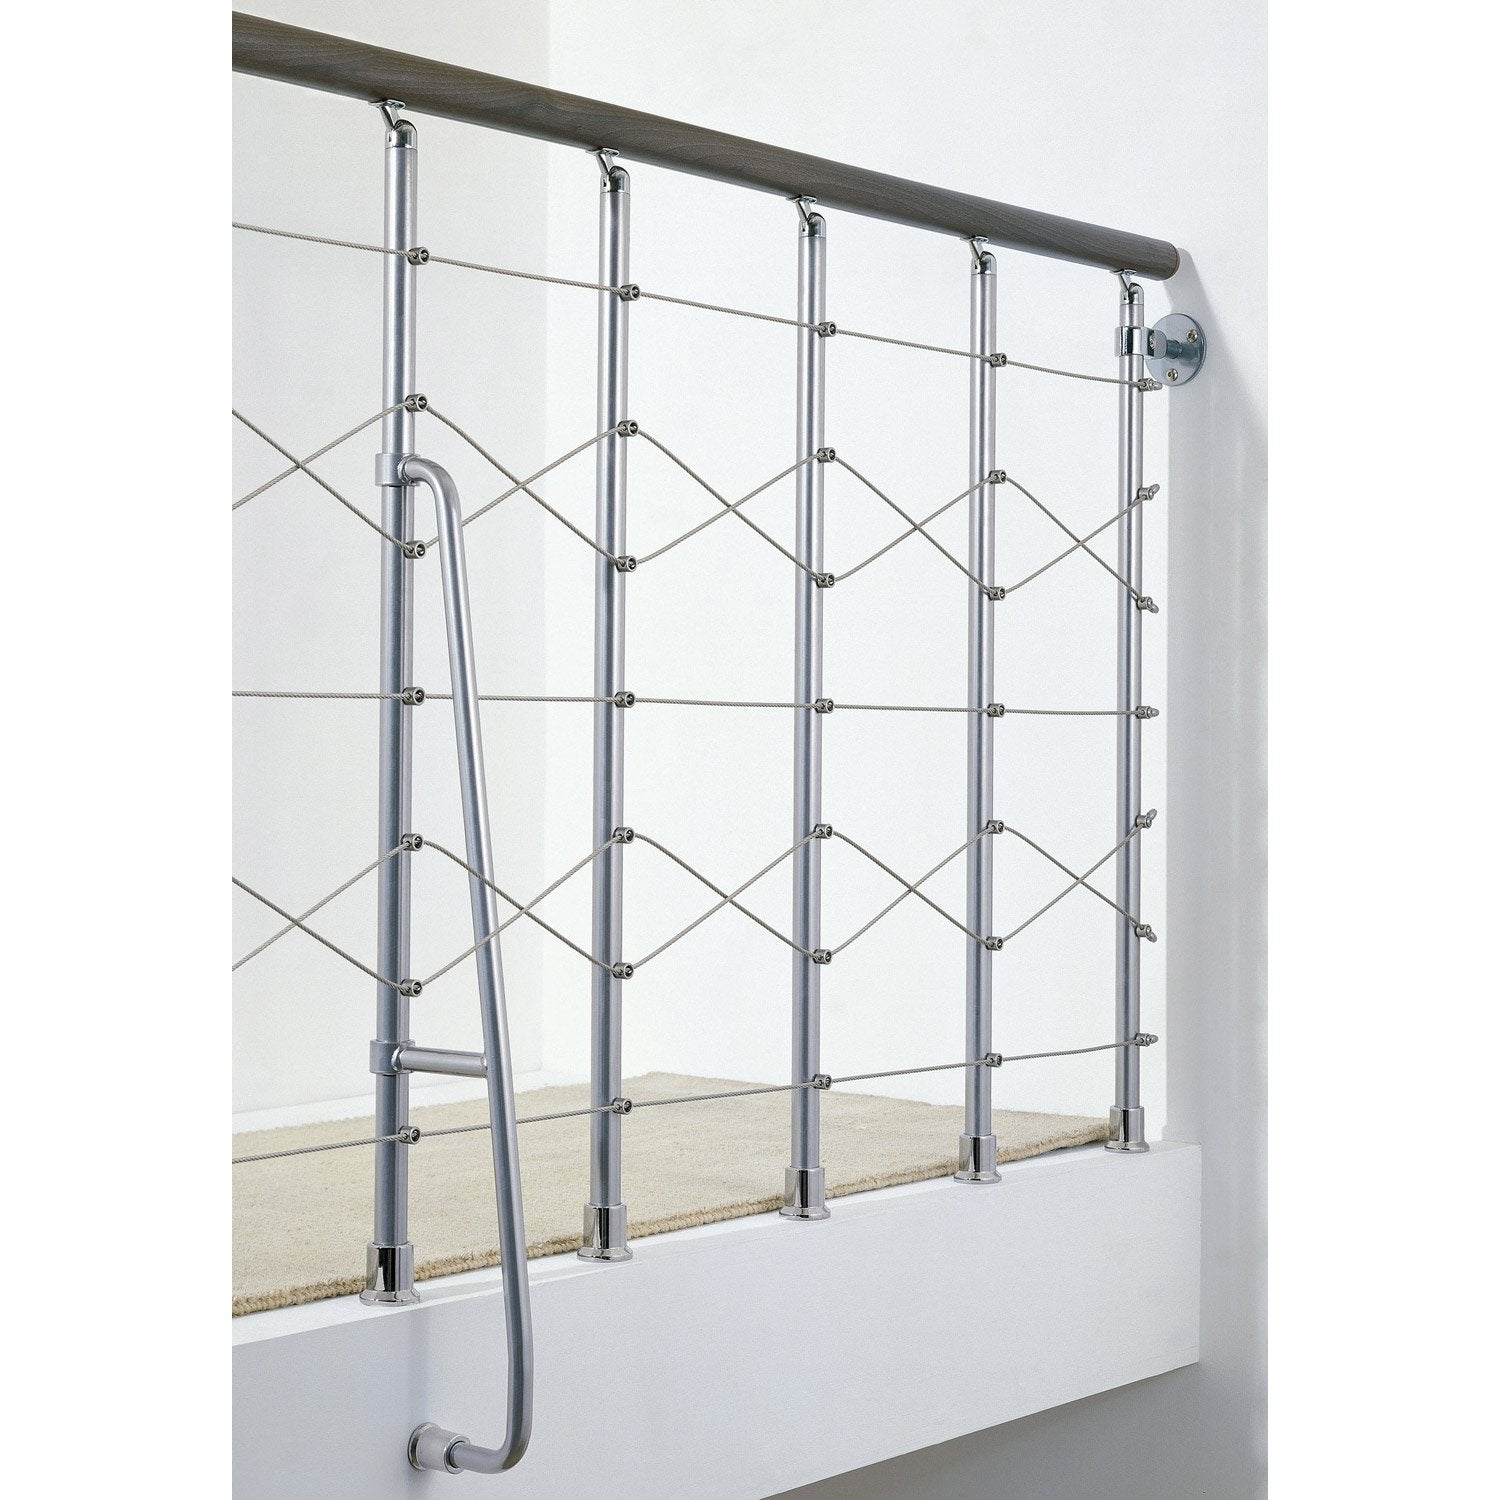 Balustrade chrome bois fonc leroy merlin - Balustrade pvc leroy merlin ...